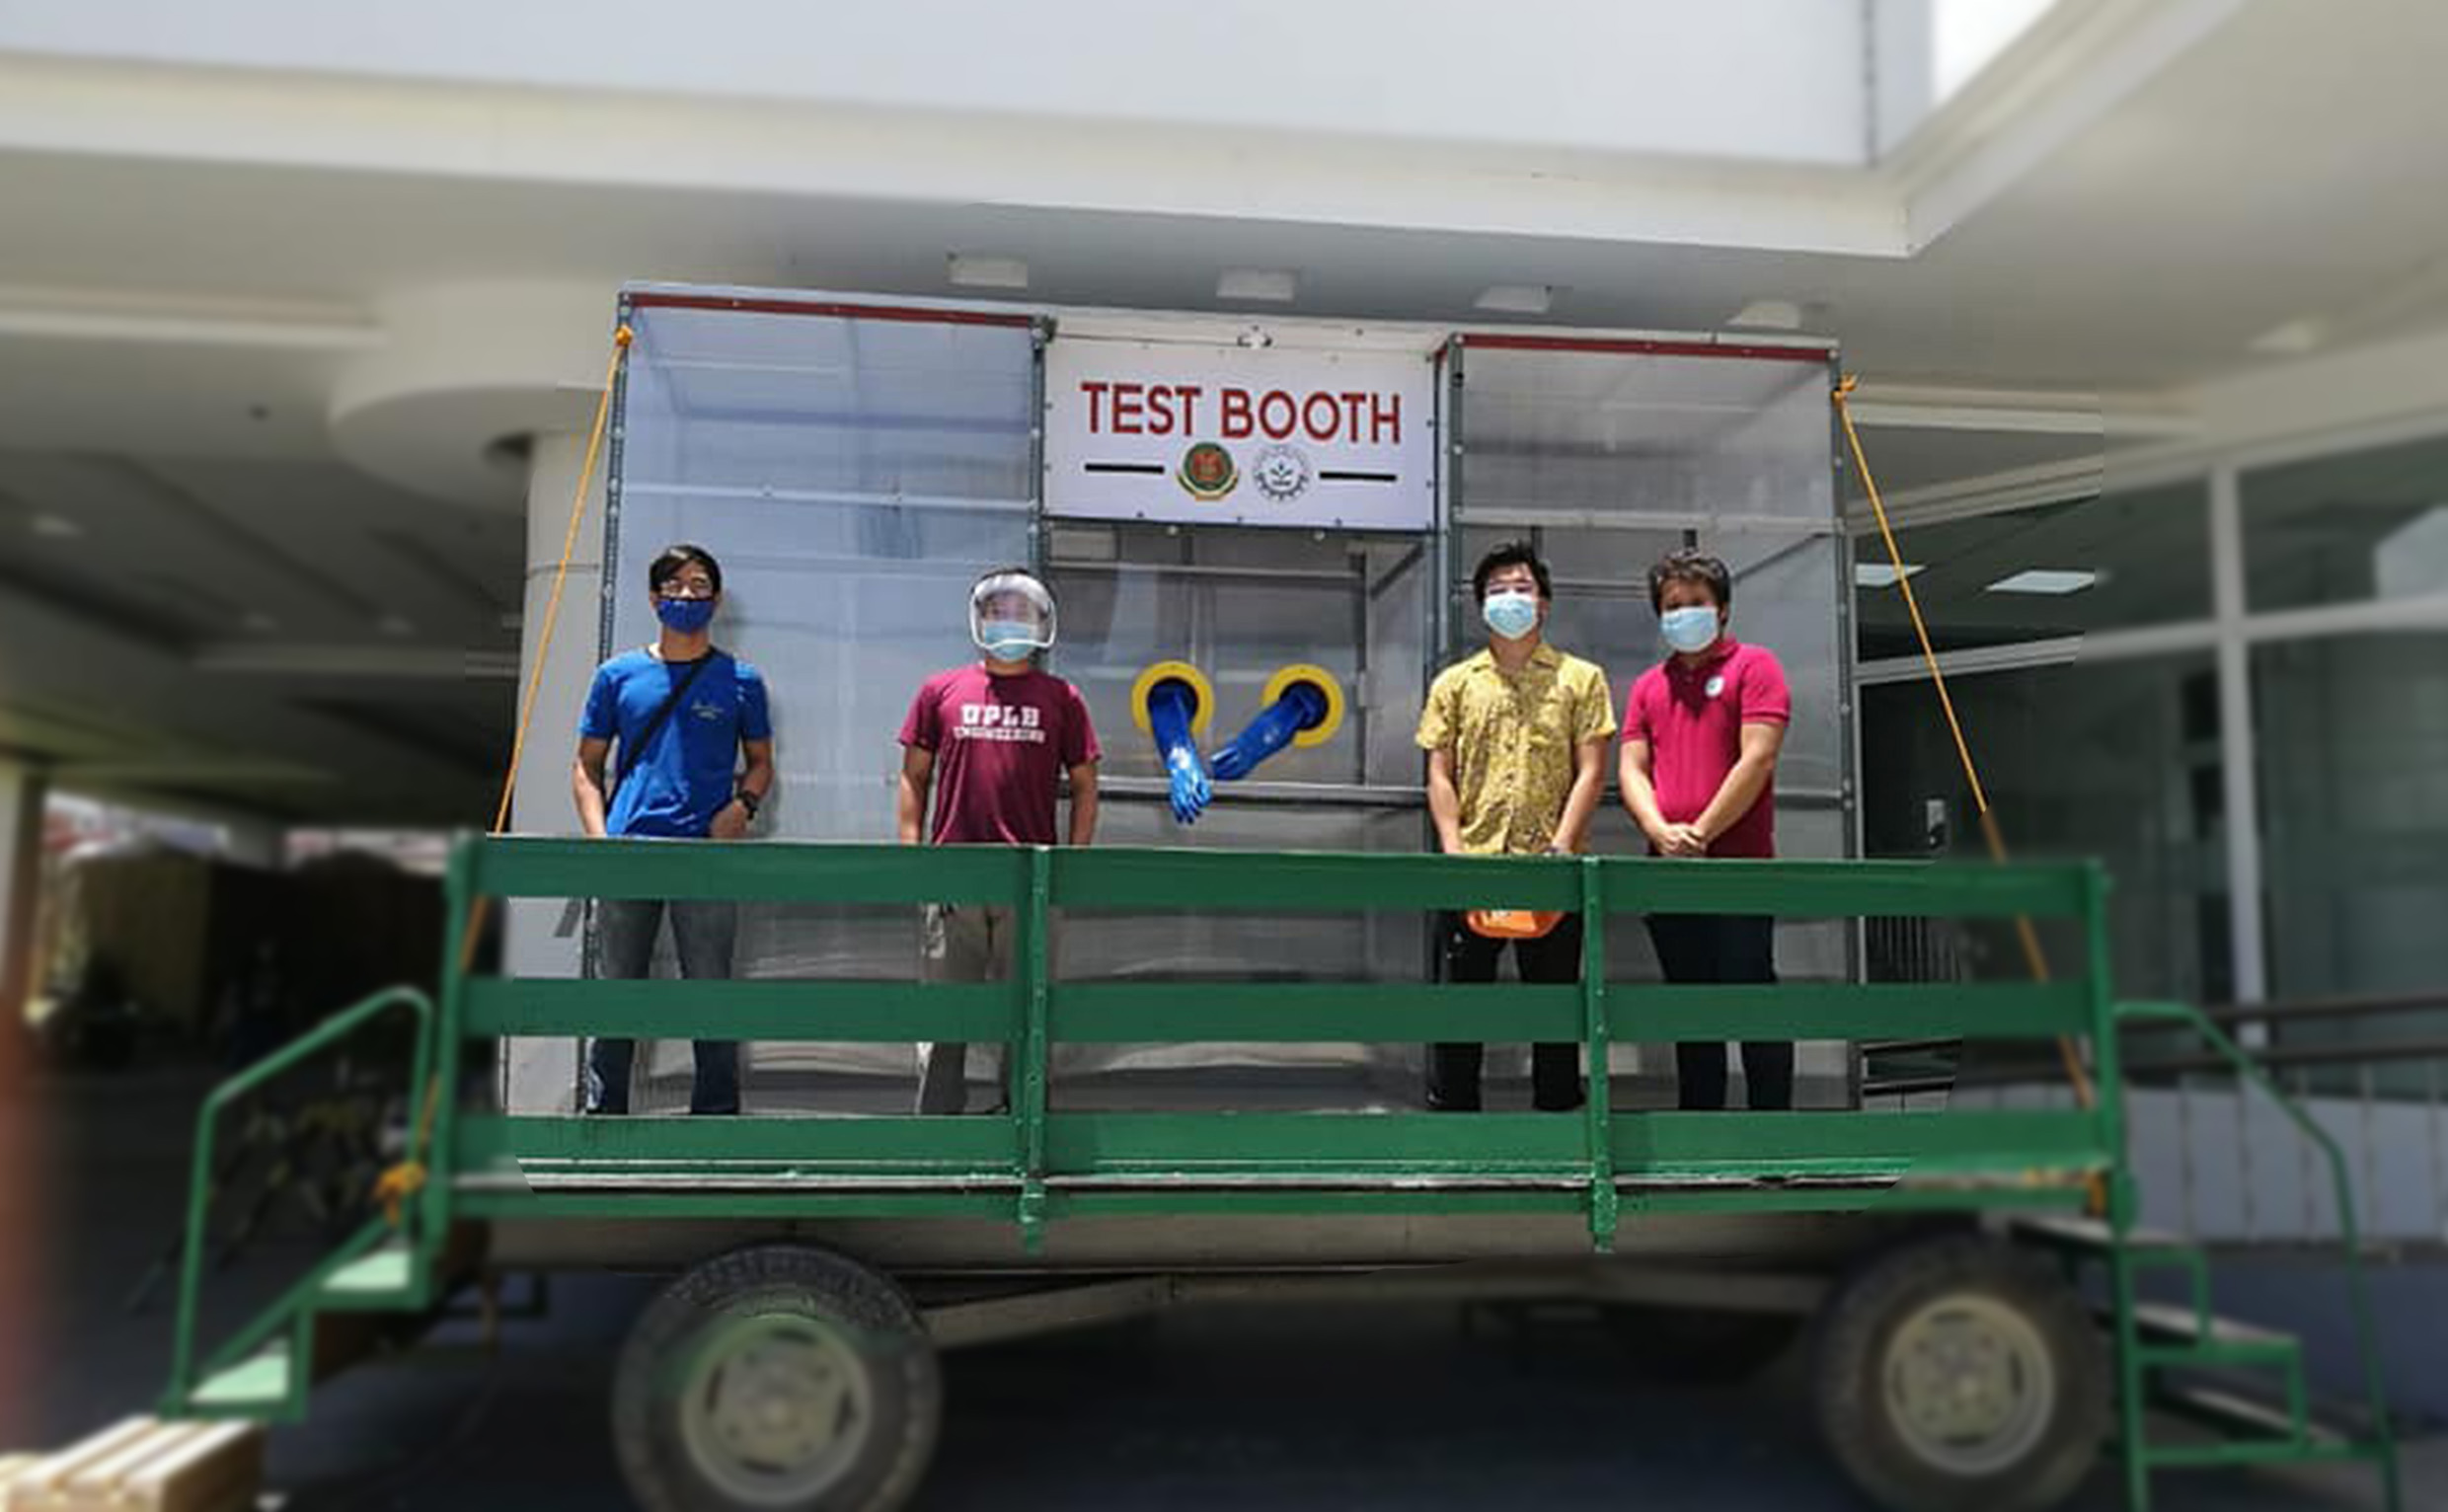 UPLB makes upgraded COVID-19 swabbing booth